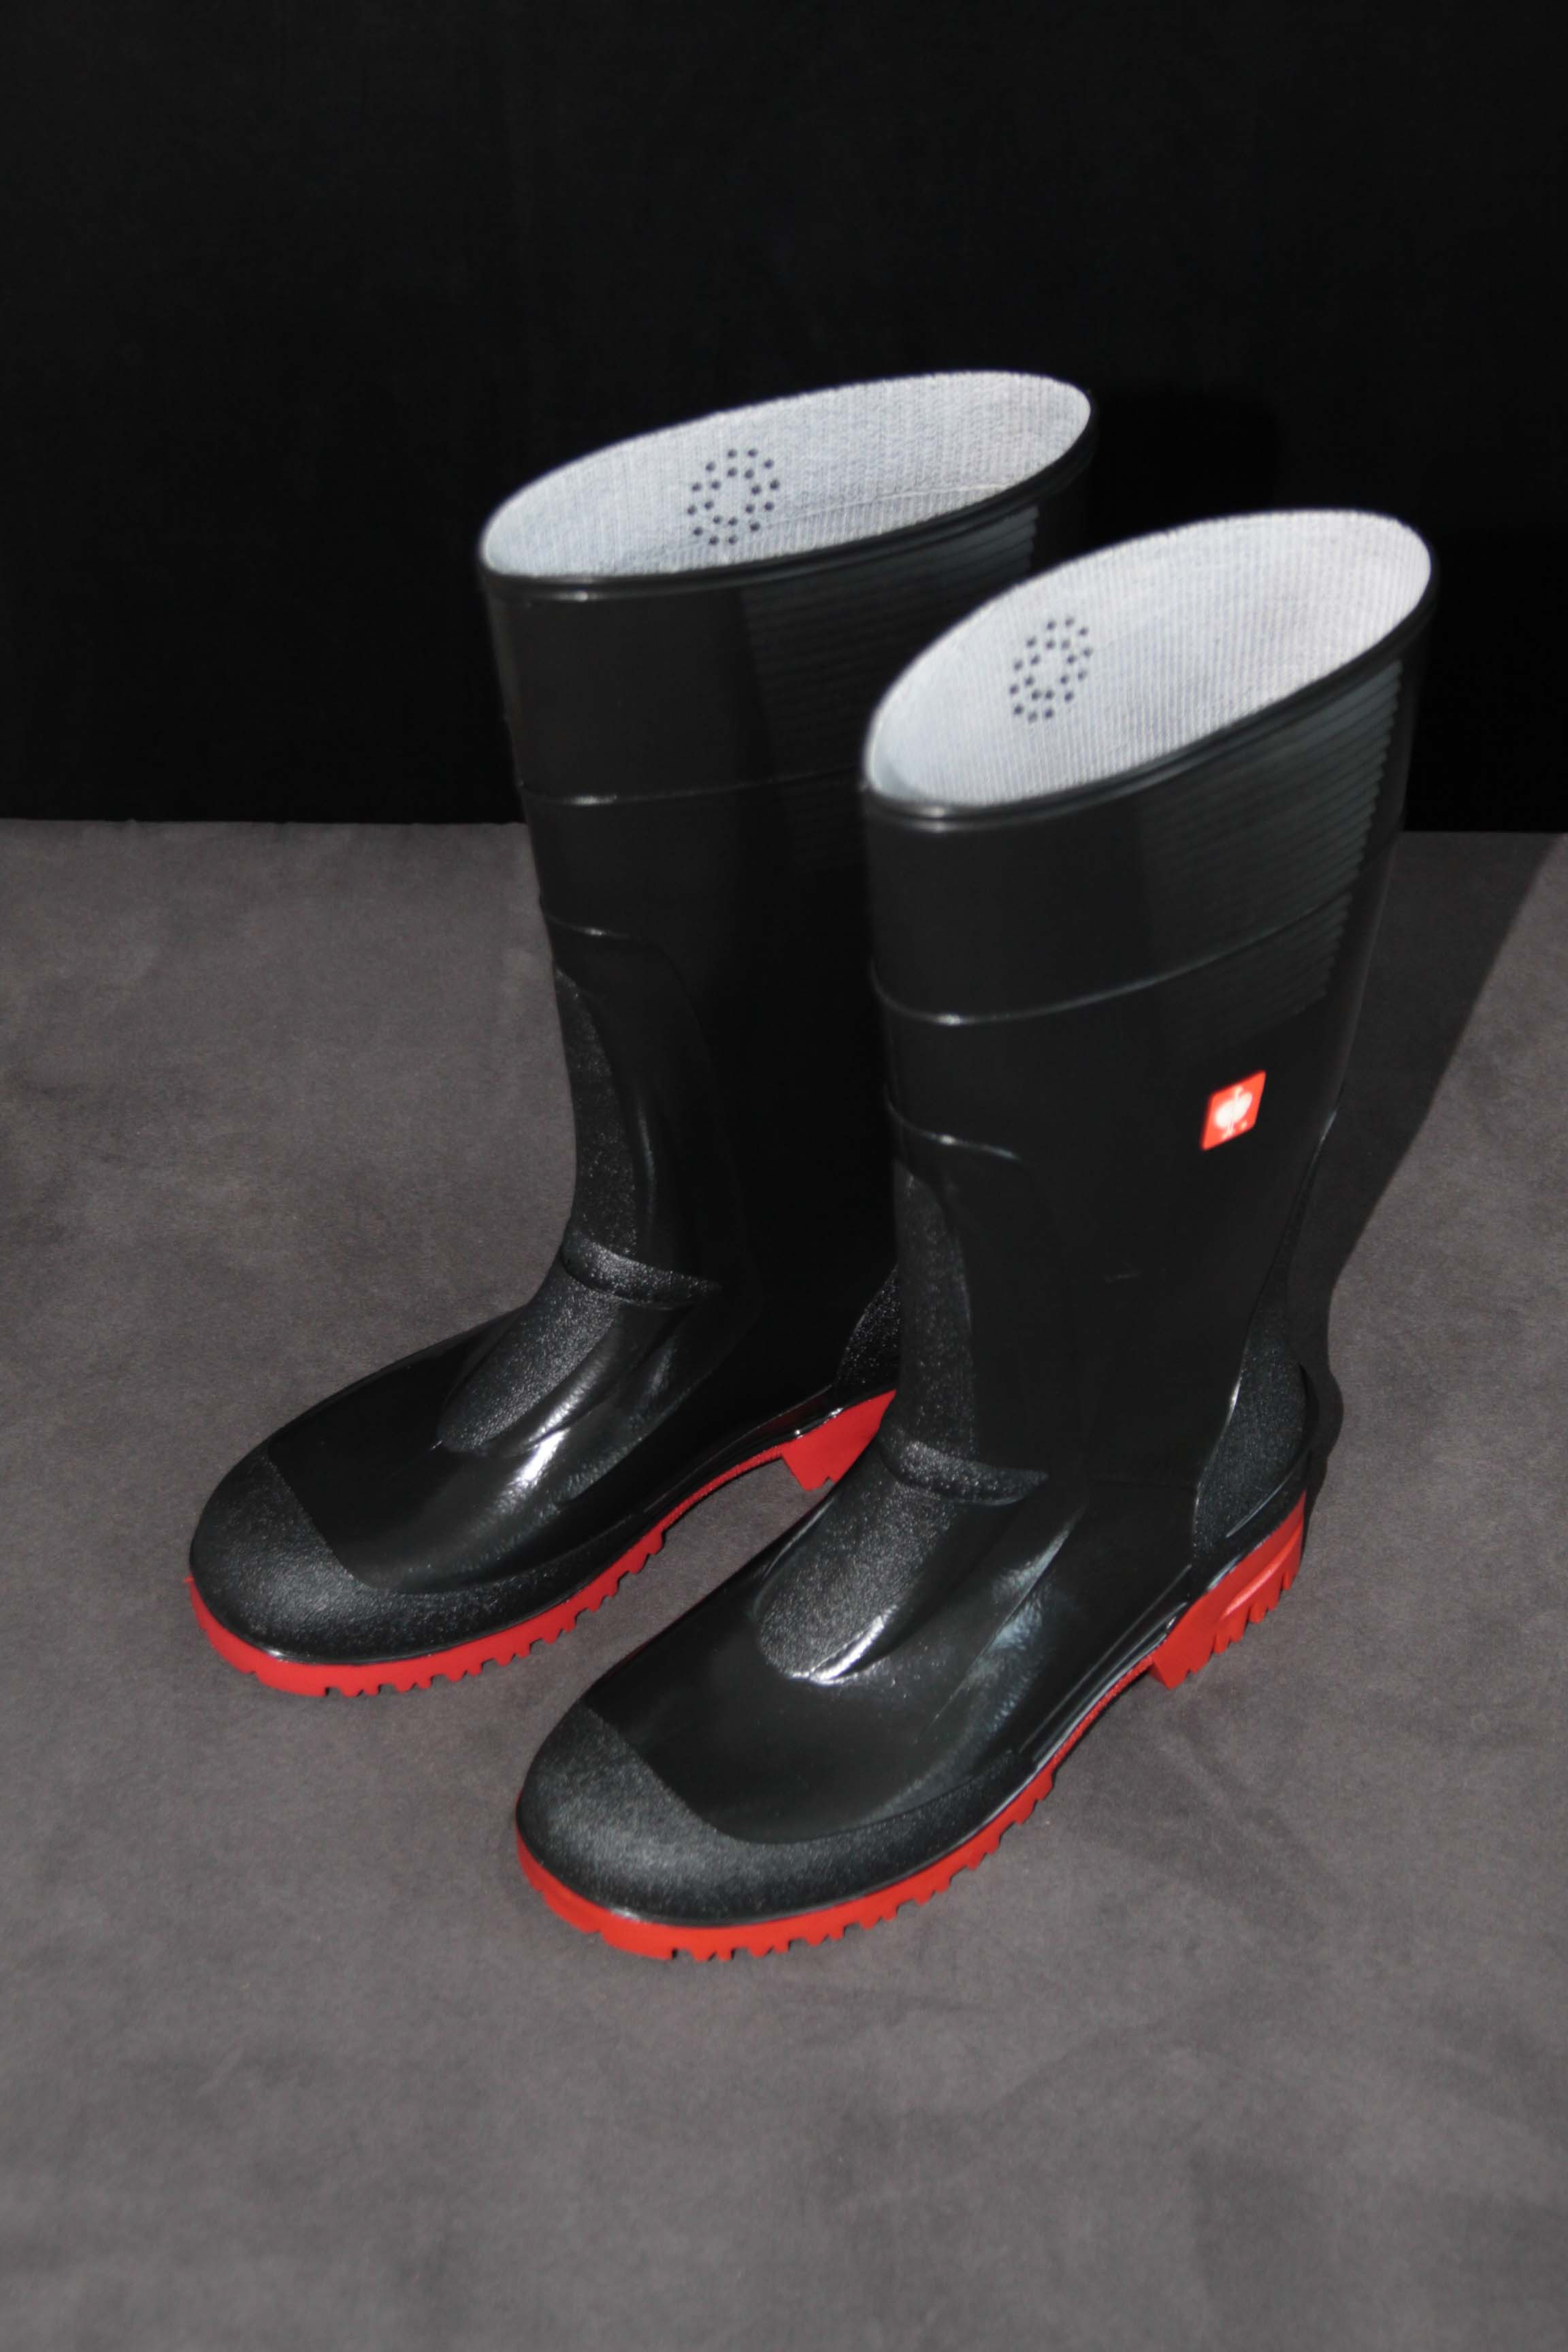 Rubber Boots – Black With Red Soles